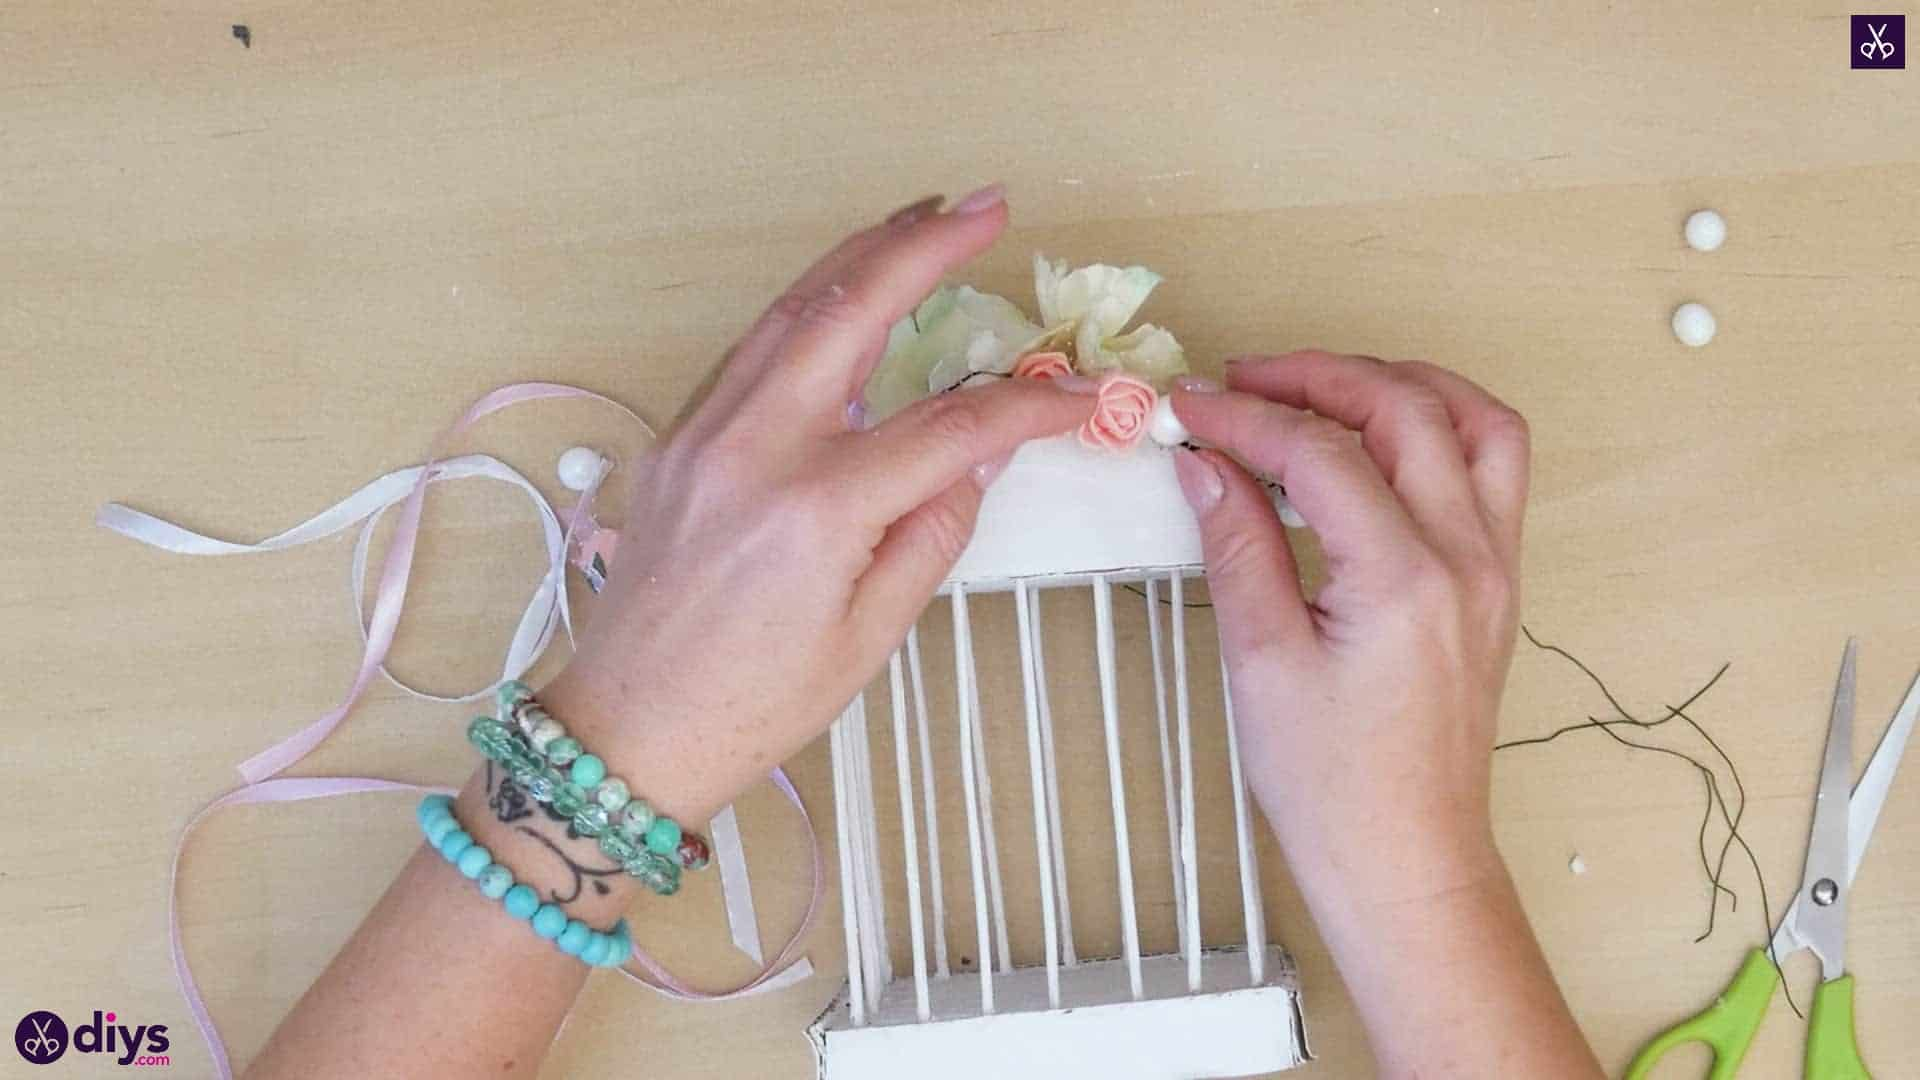 Diy miniature cage centerpiece step 10p